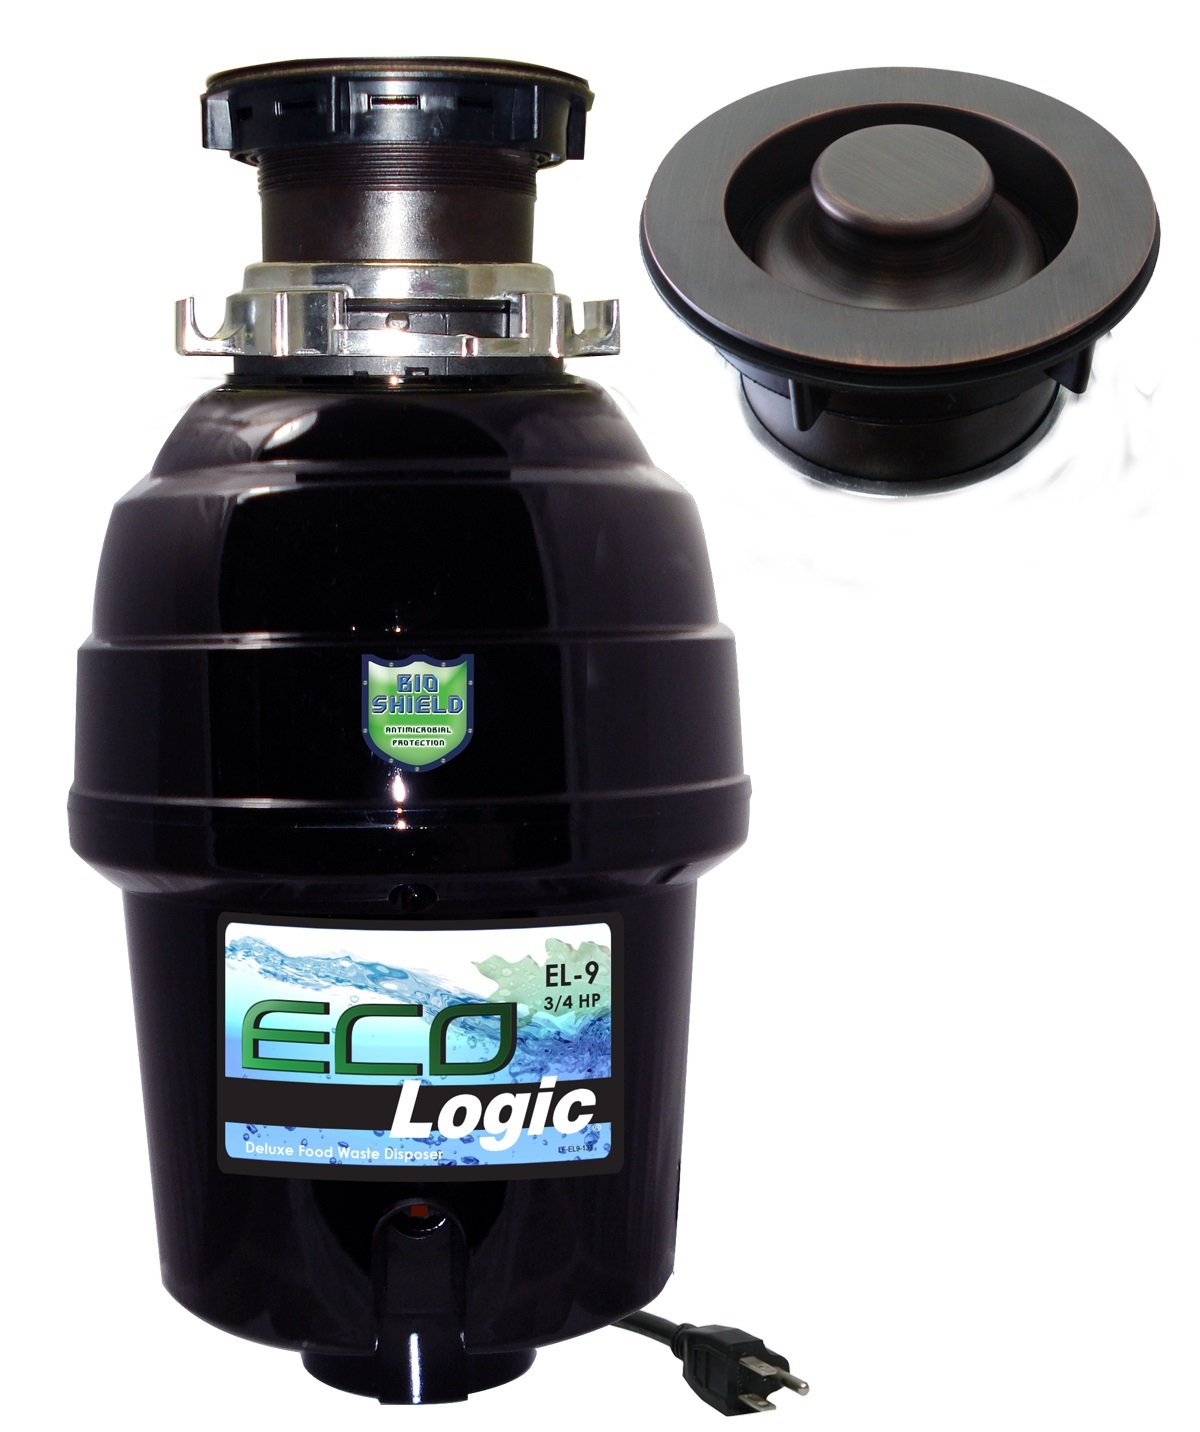 Eco Logic EL-9-DS-OR 9 Deluxe Designer Series Food Waste Disposer with Oil Rubbed Bronze Sink Flange, 3/4 HP by Eco Logic